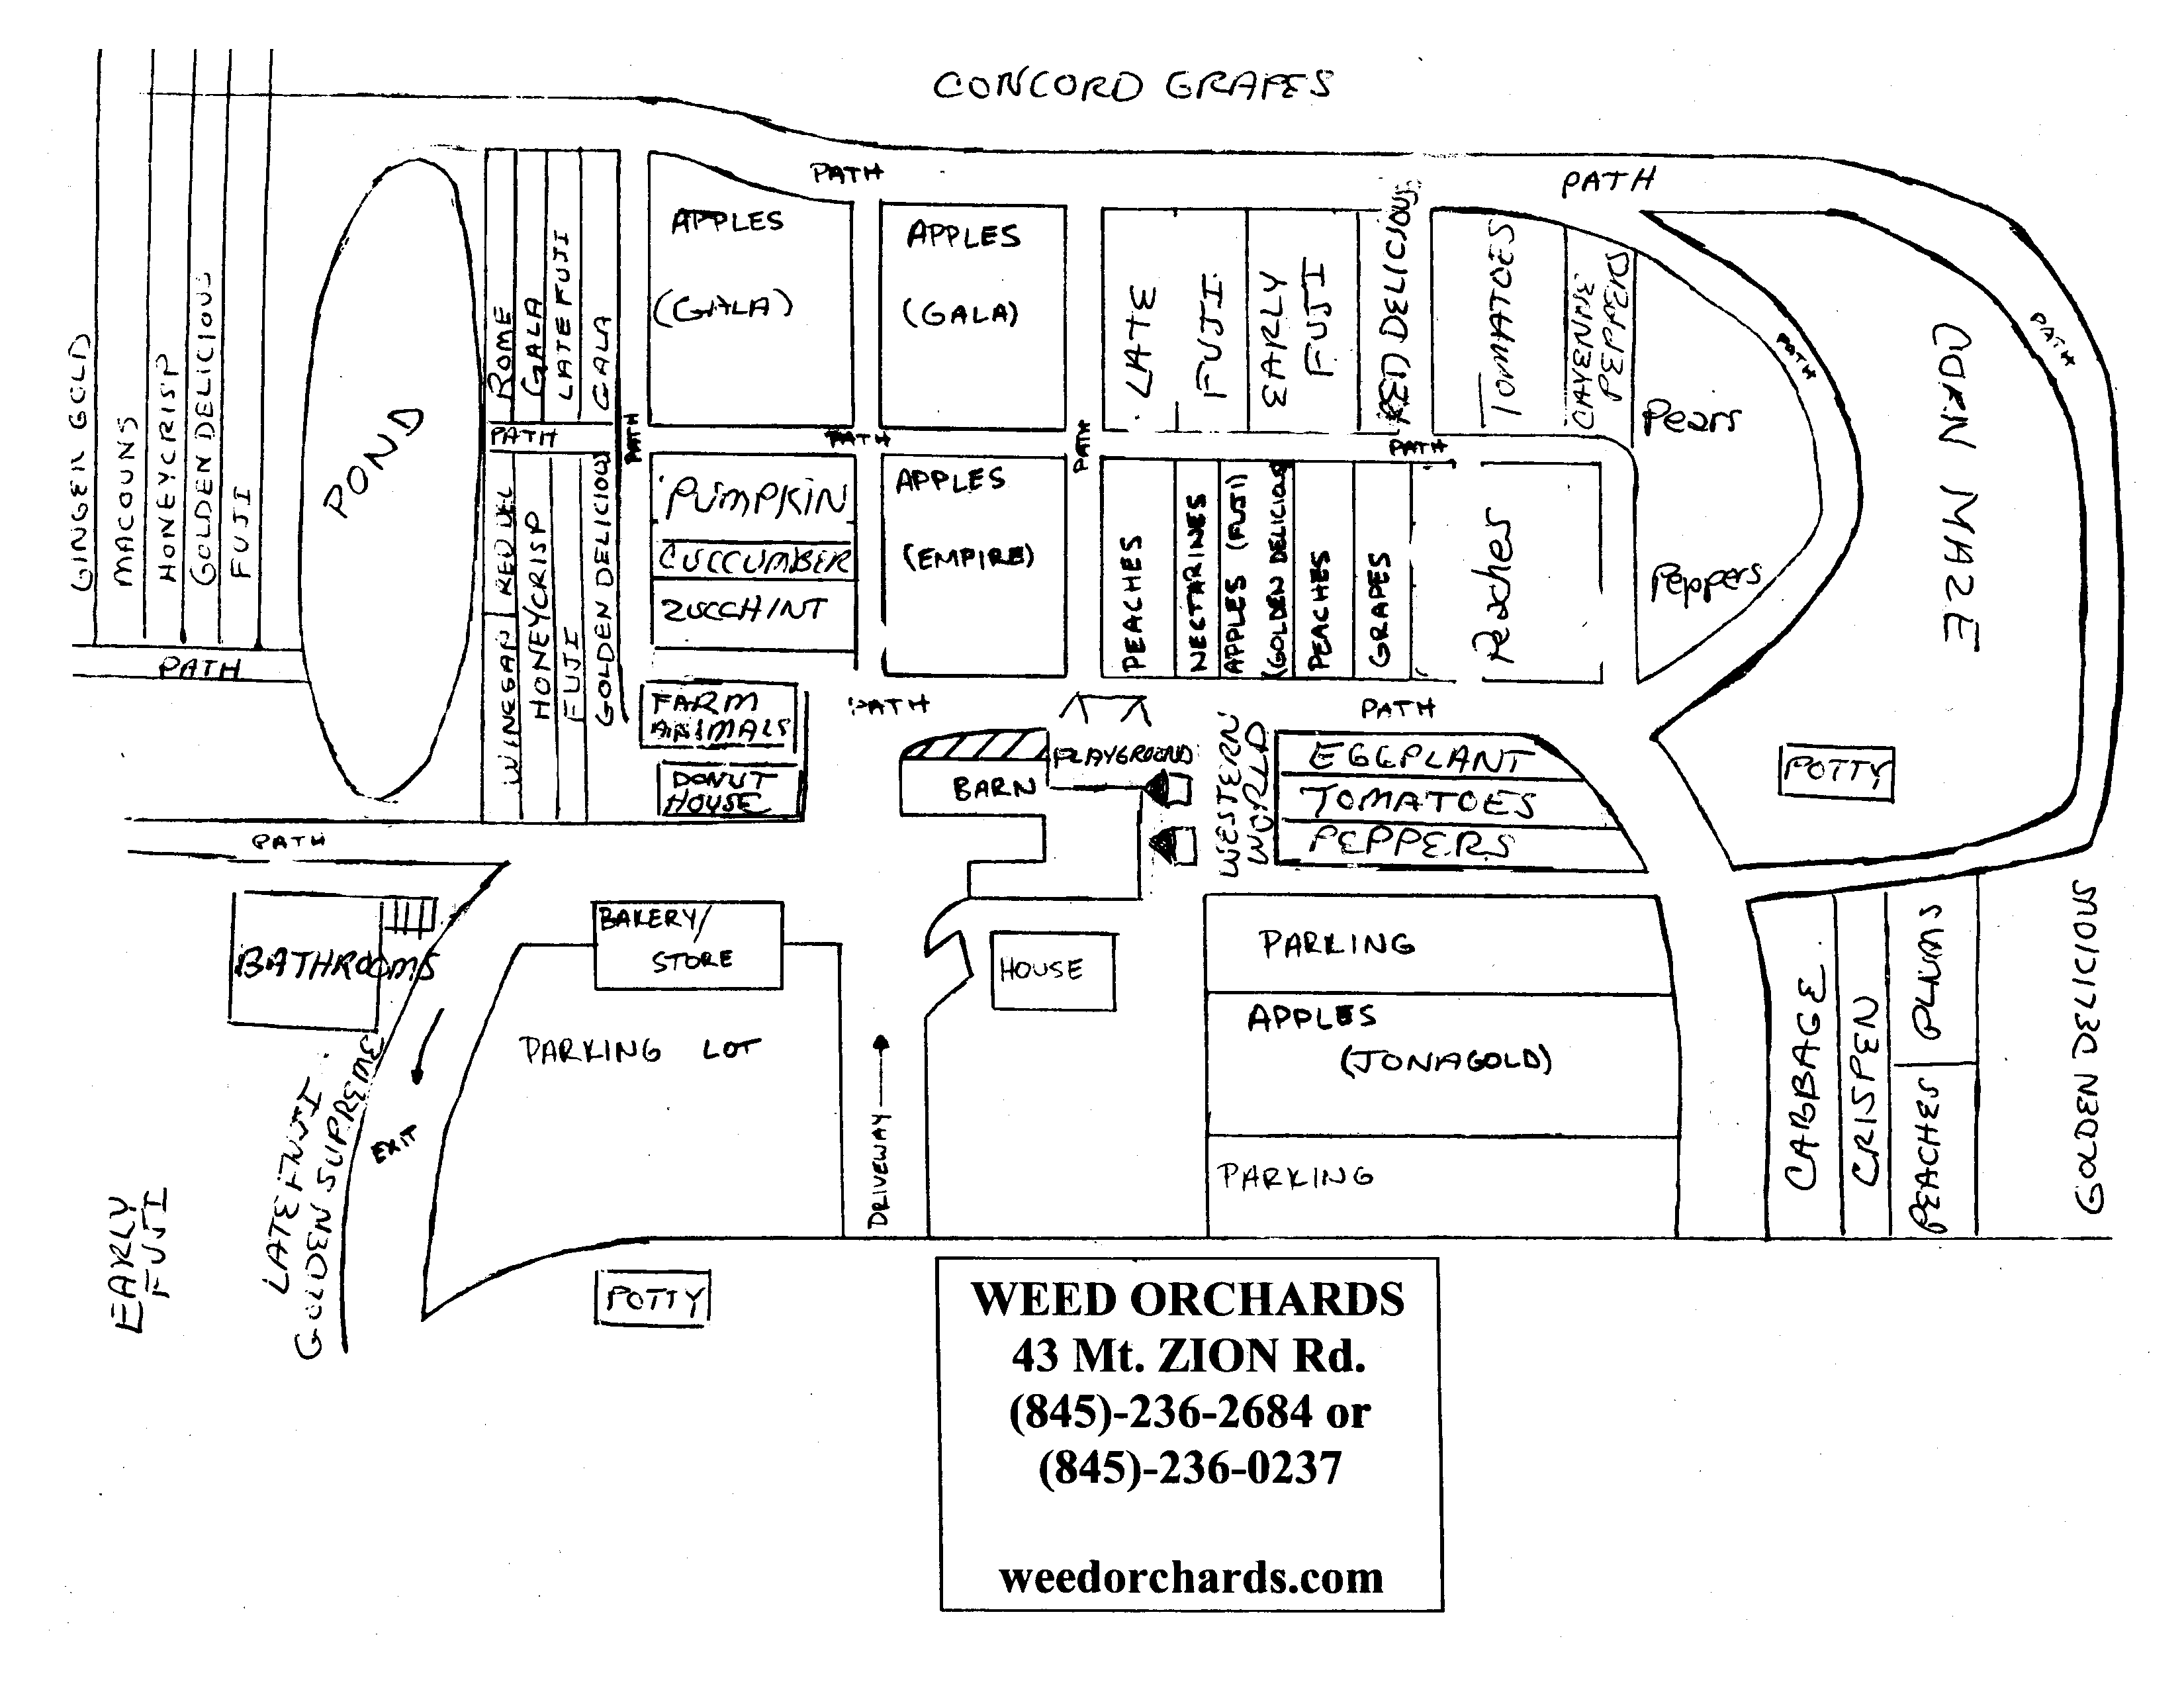 map of Weed Orchards